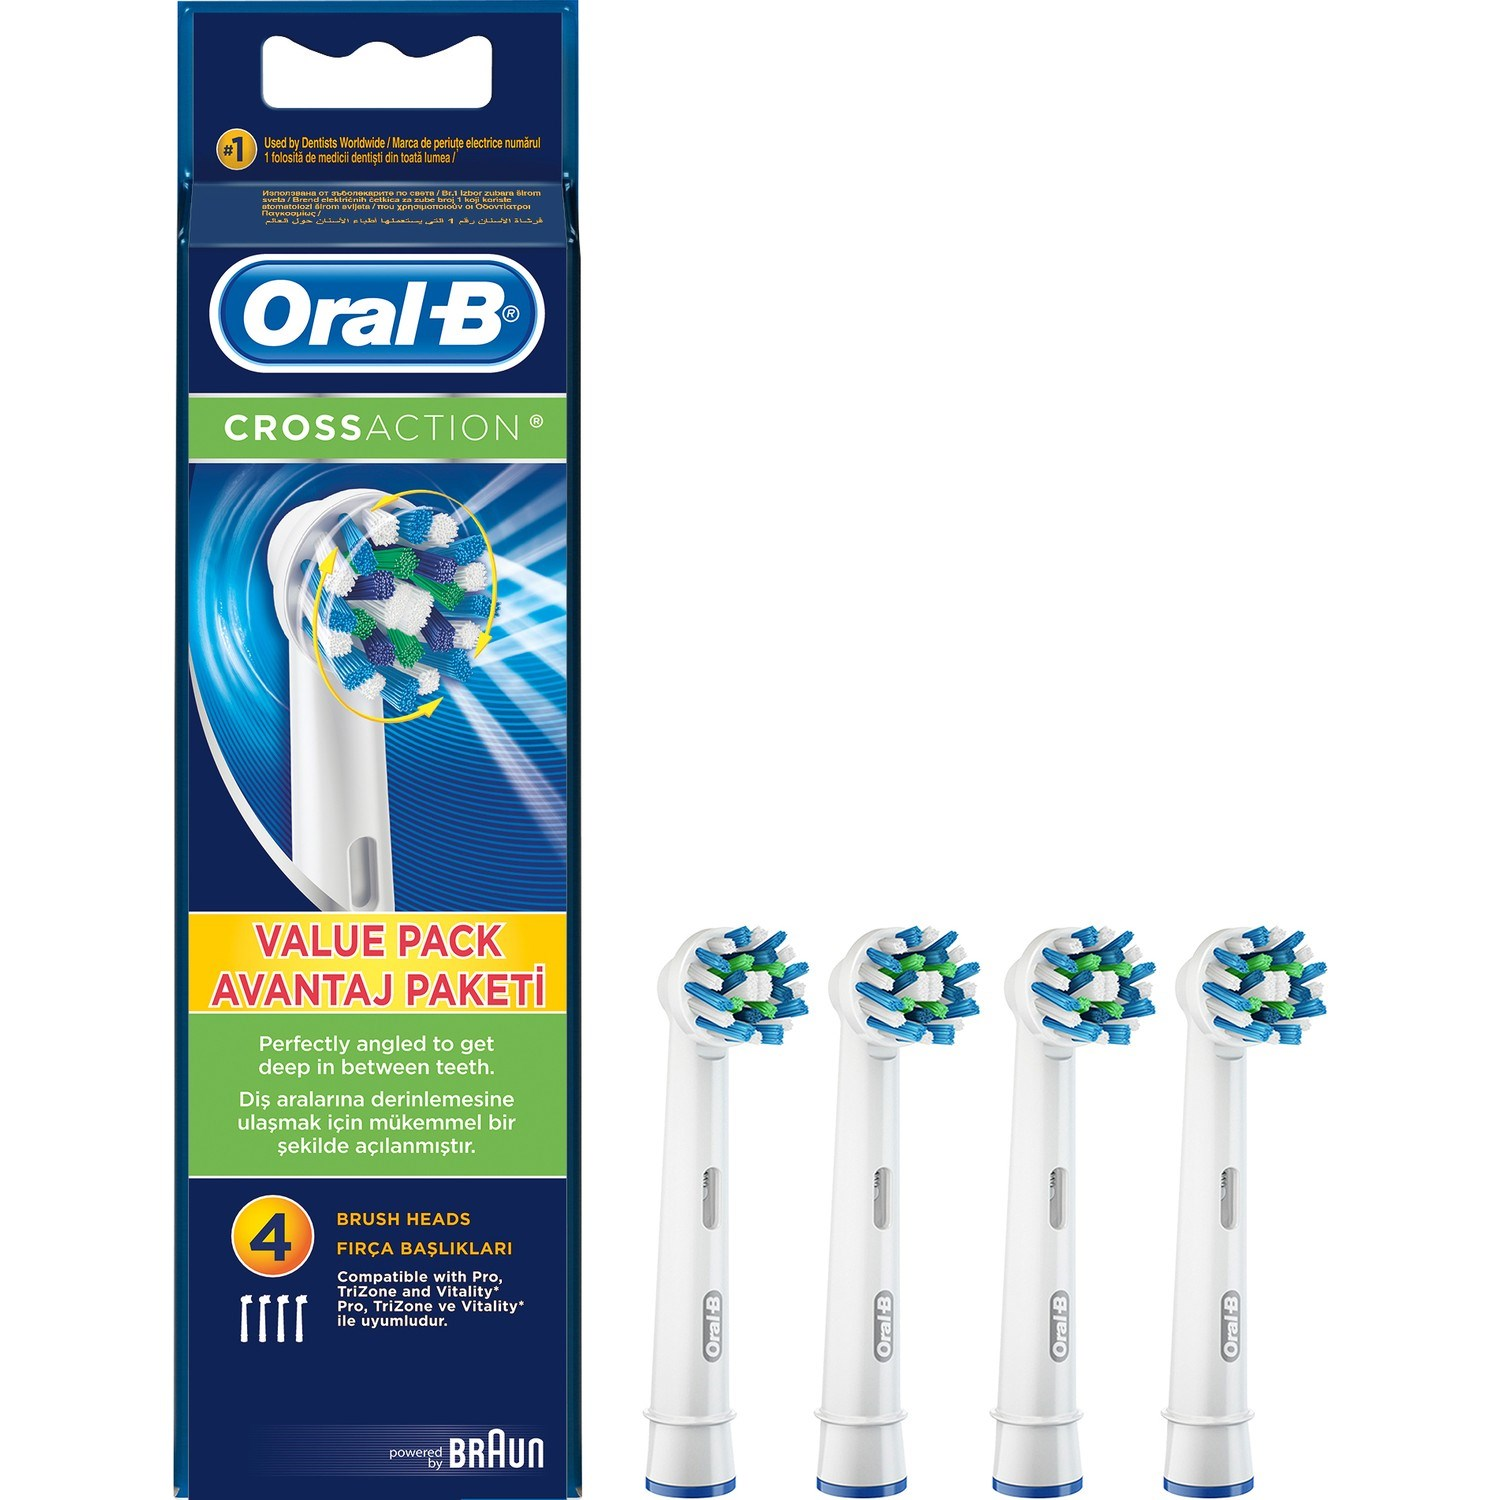 Oral-B CrossAction Electric Toothbrush Replacement Head 4'lü image